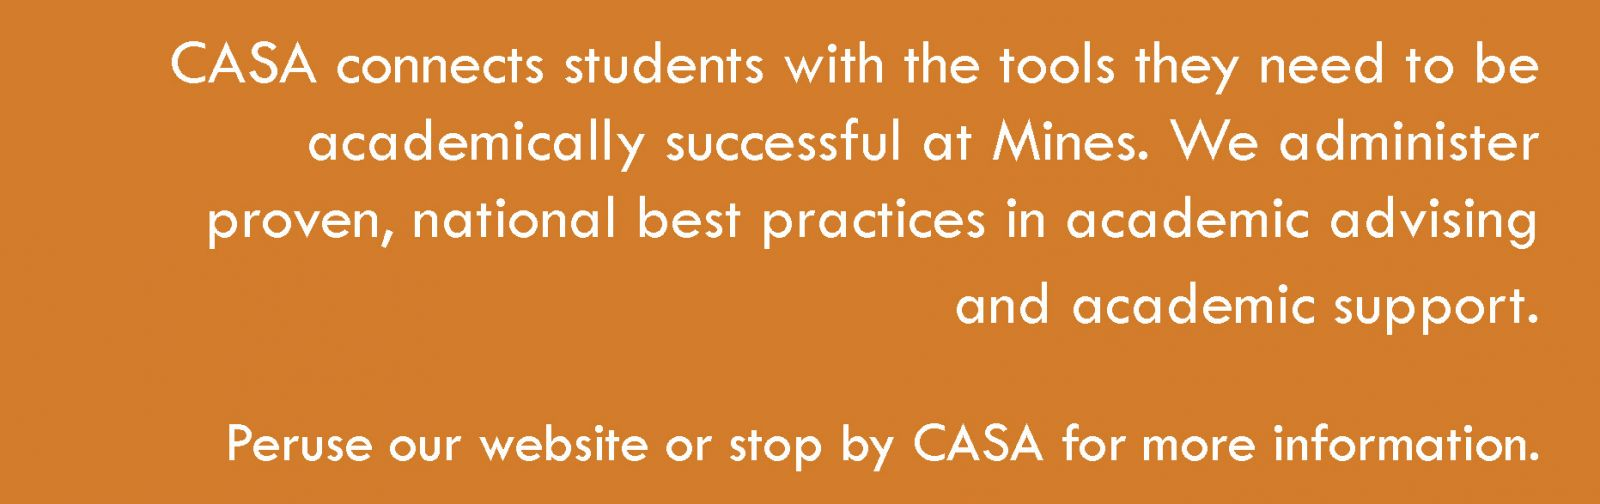 CASA connects students with the tools they need to be successful. CASA administers proven, national best practices in academic advising and academic support. Use the links on this page or stop by CASA offices for more information.